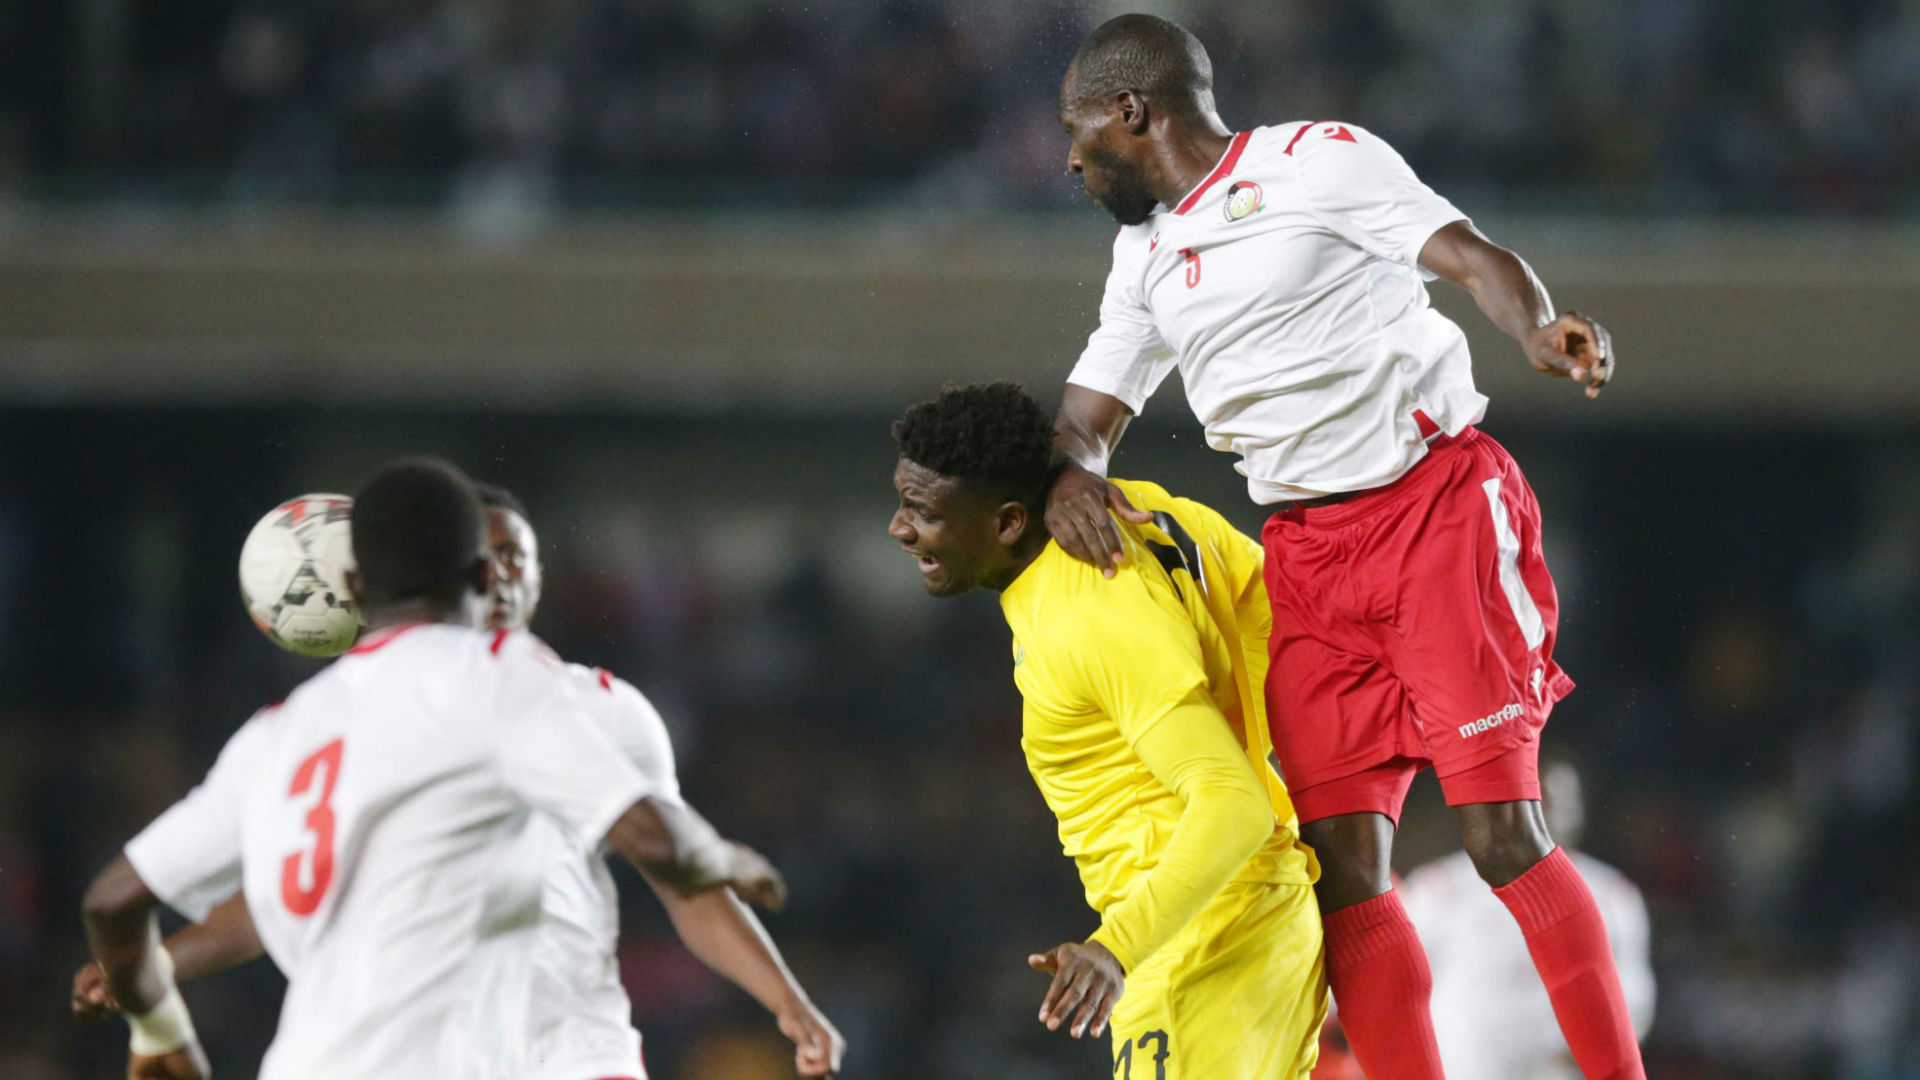 Joash Onyango of Kenya and Harambee Stars vs defends against Peniel Kokou of Togo.